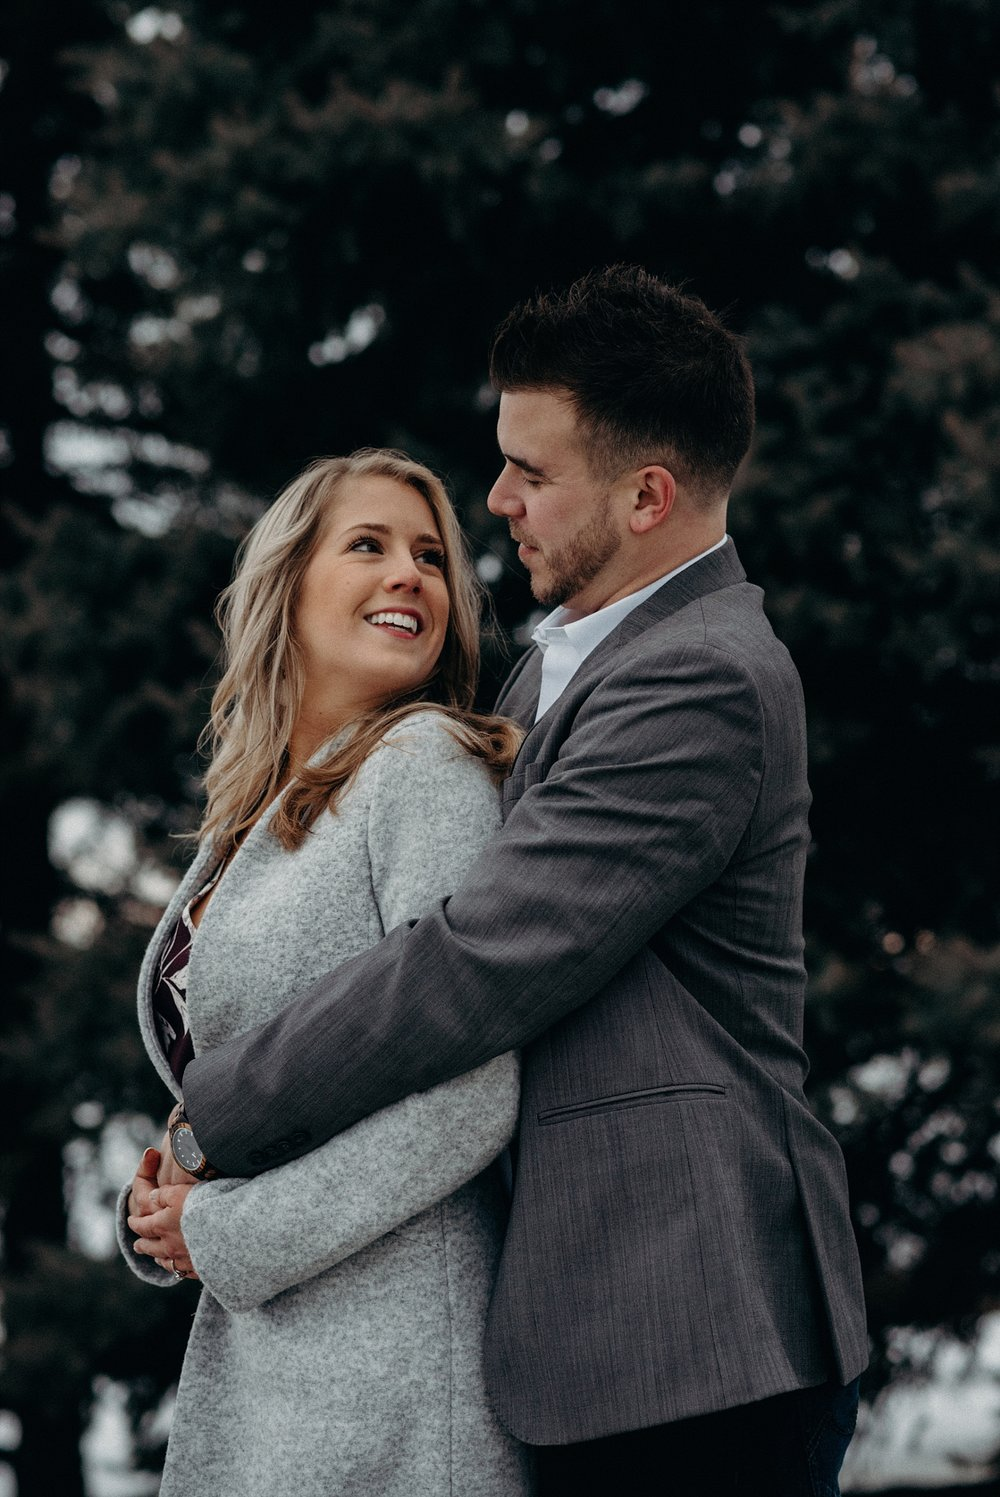 Mocha Tree Studios Ottawa Toronto Montreal Wedding and Engagement Photographer and Videographer Dark Moody Intimate Authentic Modern Romantic Cinematic Best Candid Nepean Sailing Club Andew Haydon Park 14